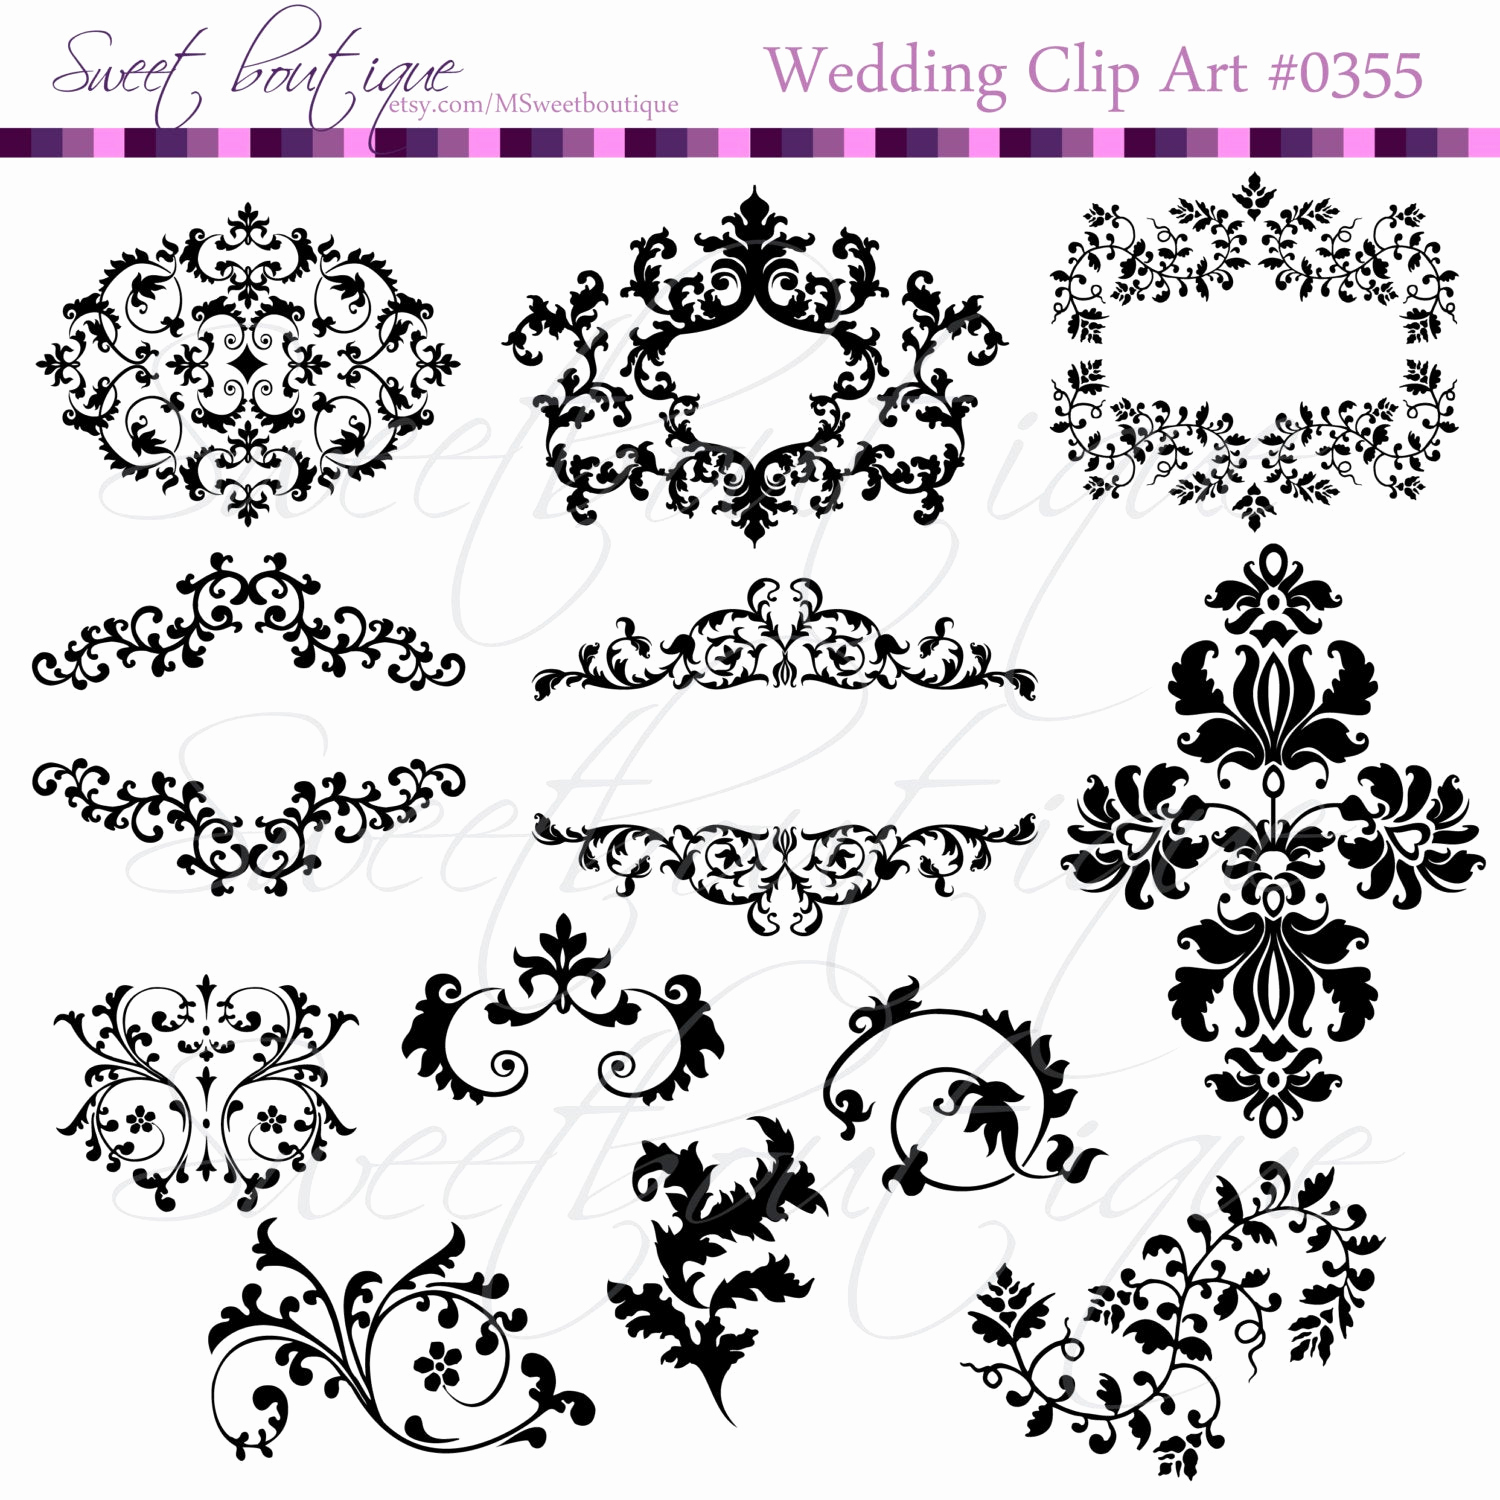 Wedding Invitation Clip Art Luxury Wedding Digital Frames Clip Art Clipart Scrapbook Invitation